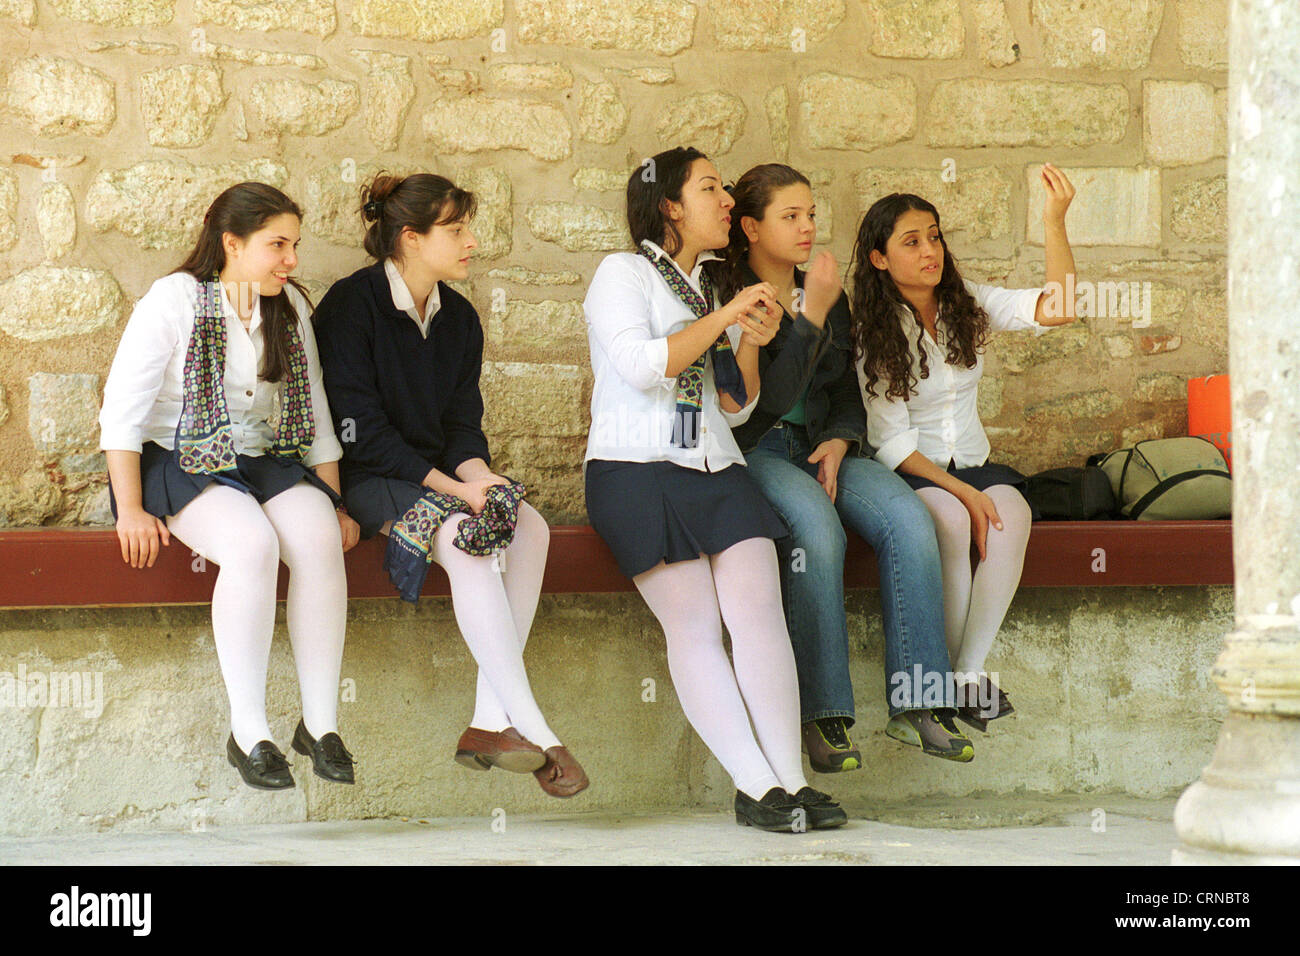 Schoolgirls sitting on a bench, Istanbul - Stock Image